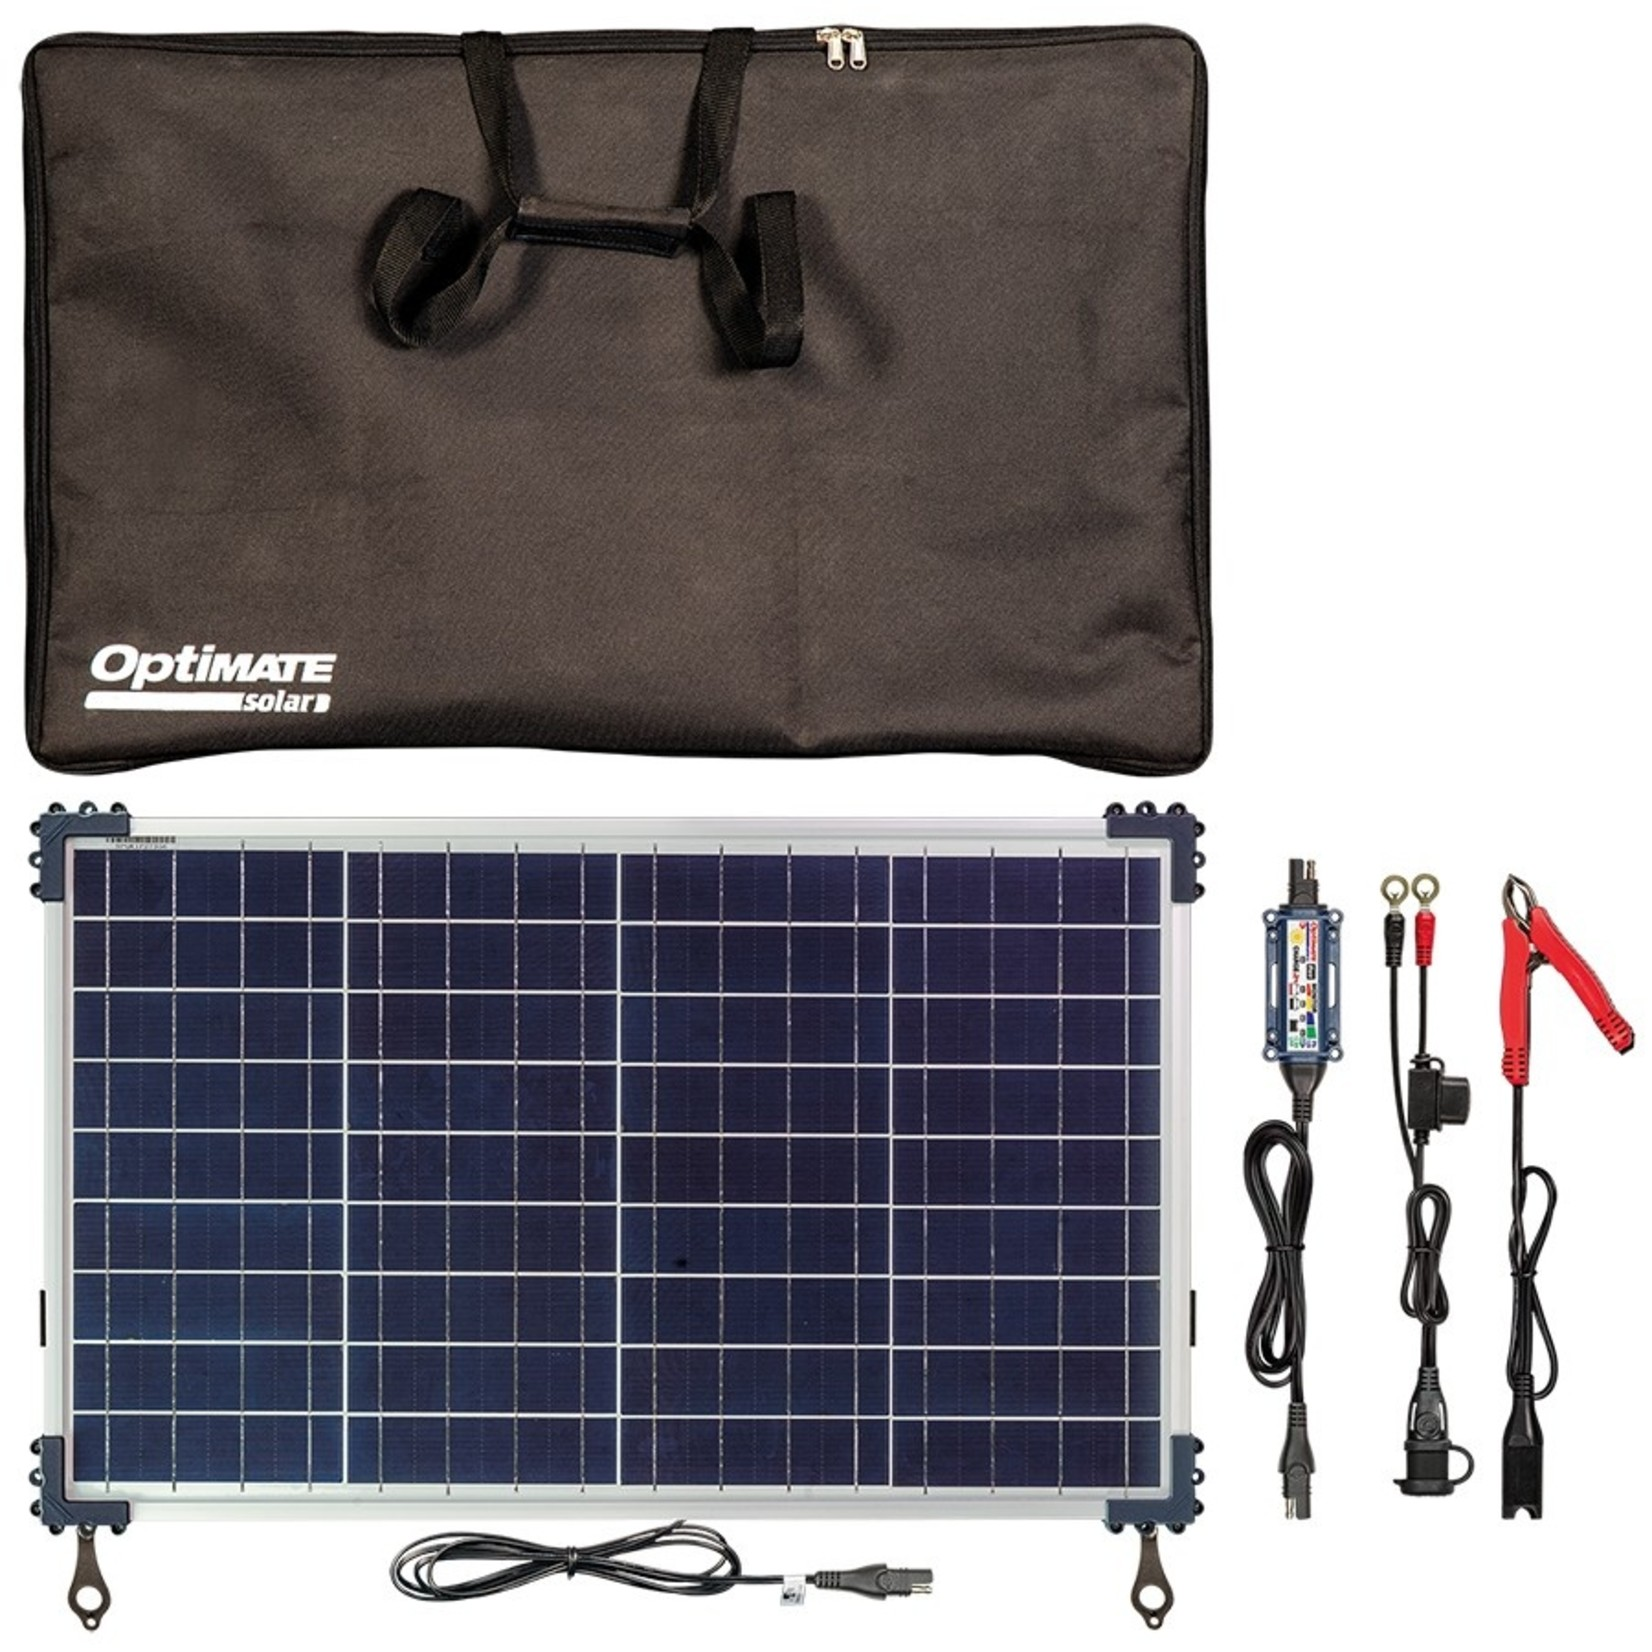 OptiMate DUO Solar 40W - Travel Kit - Battery Charger